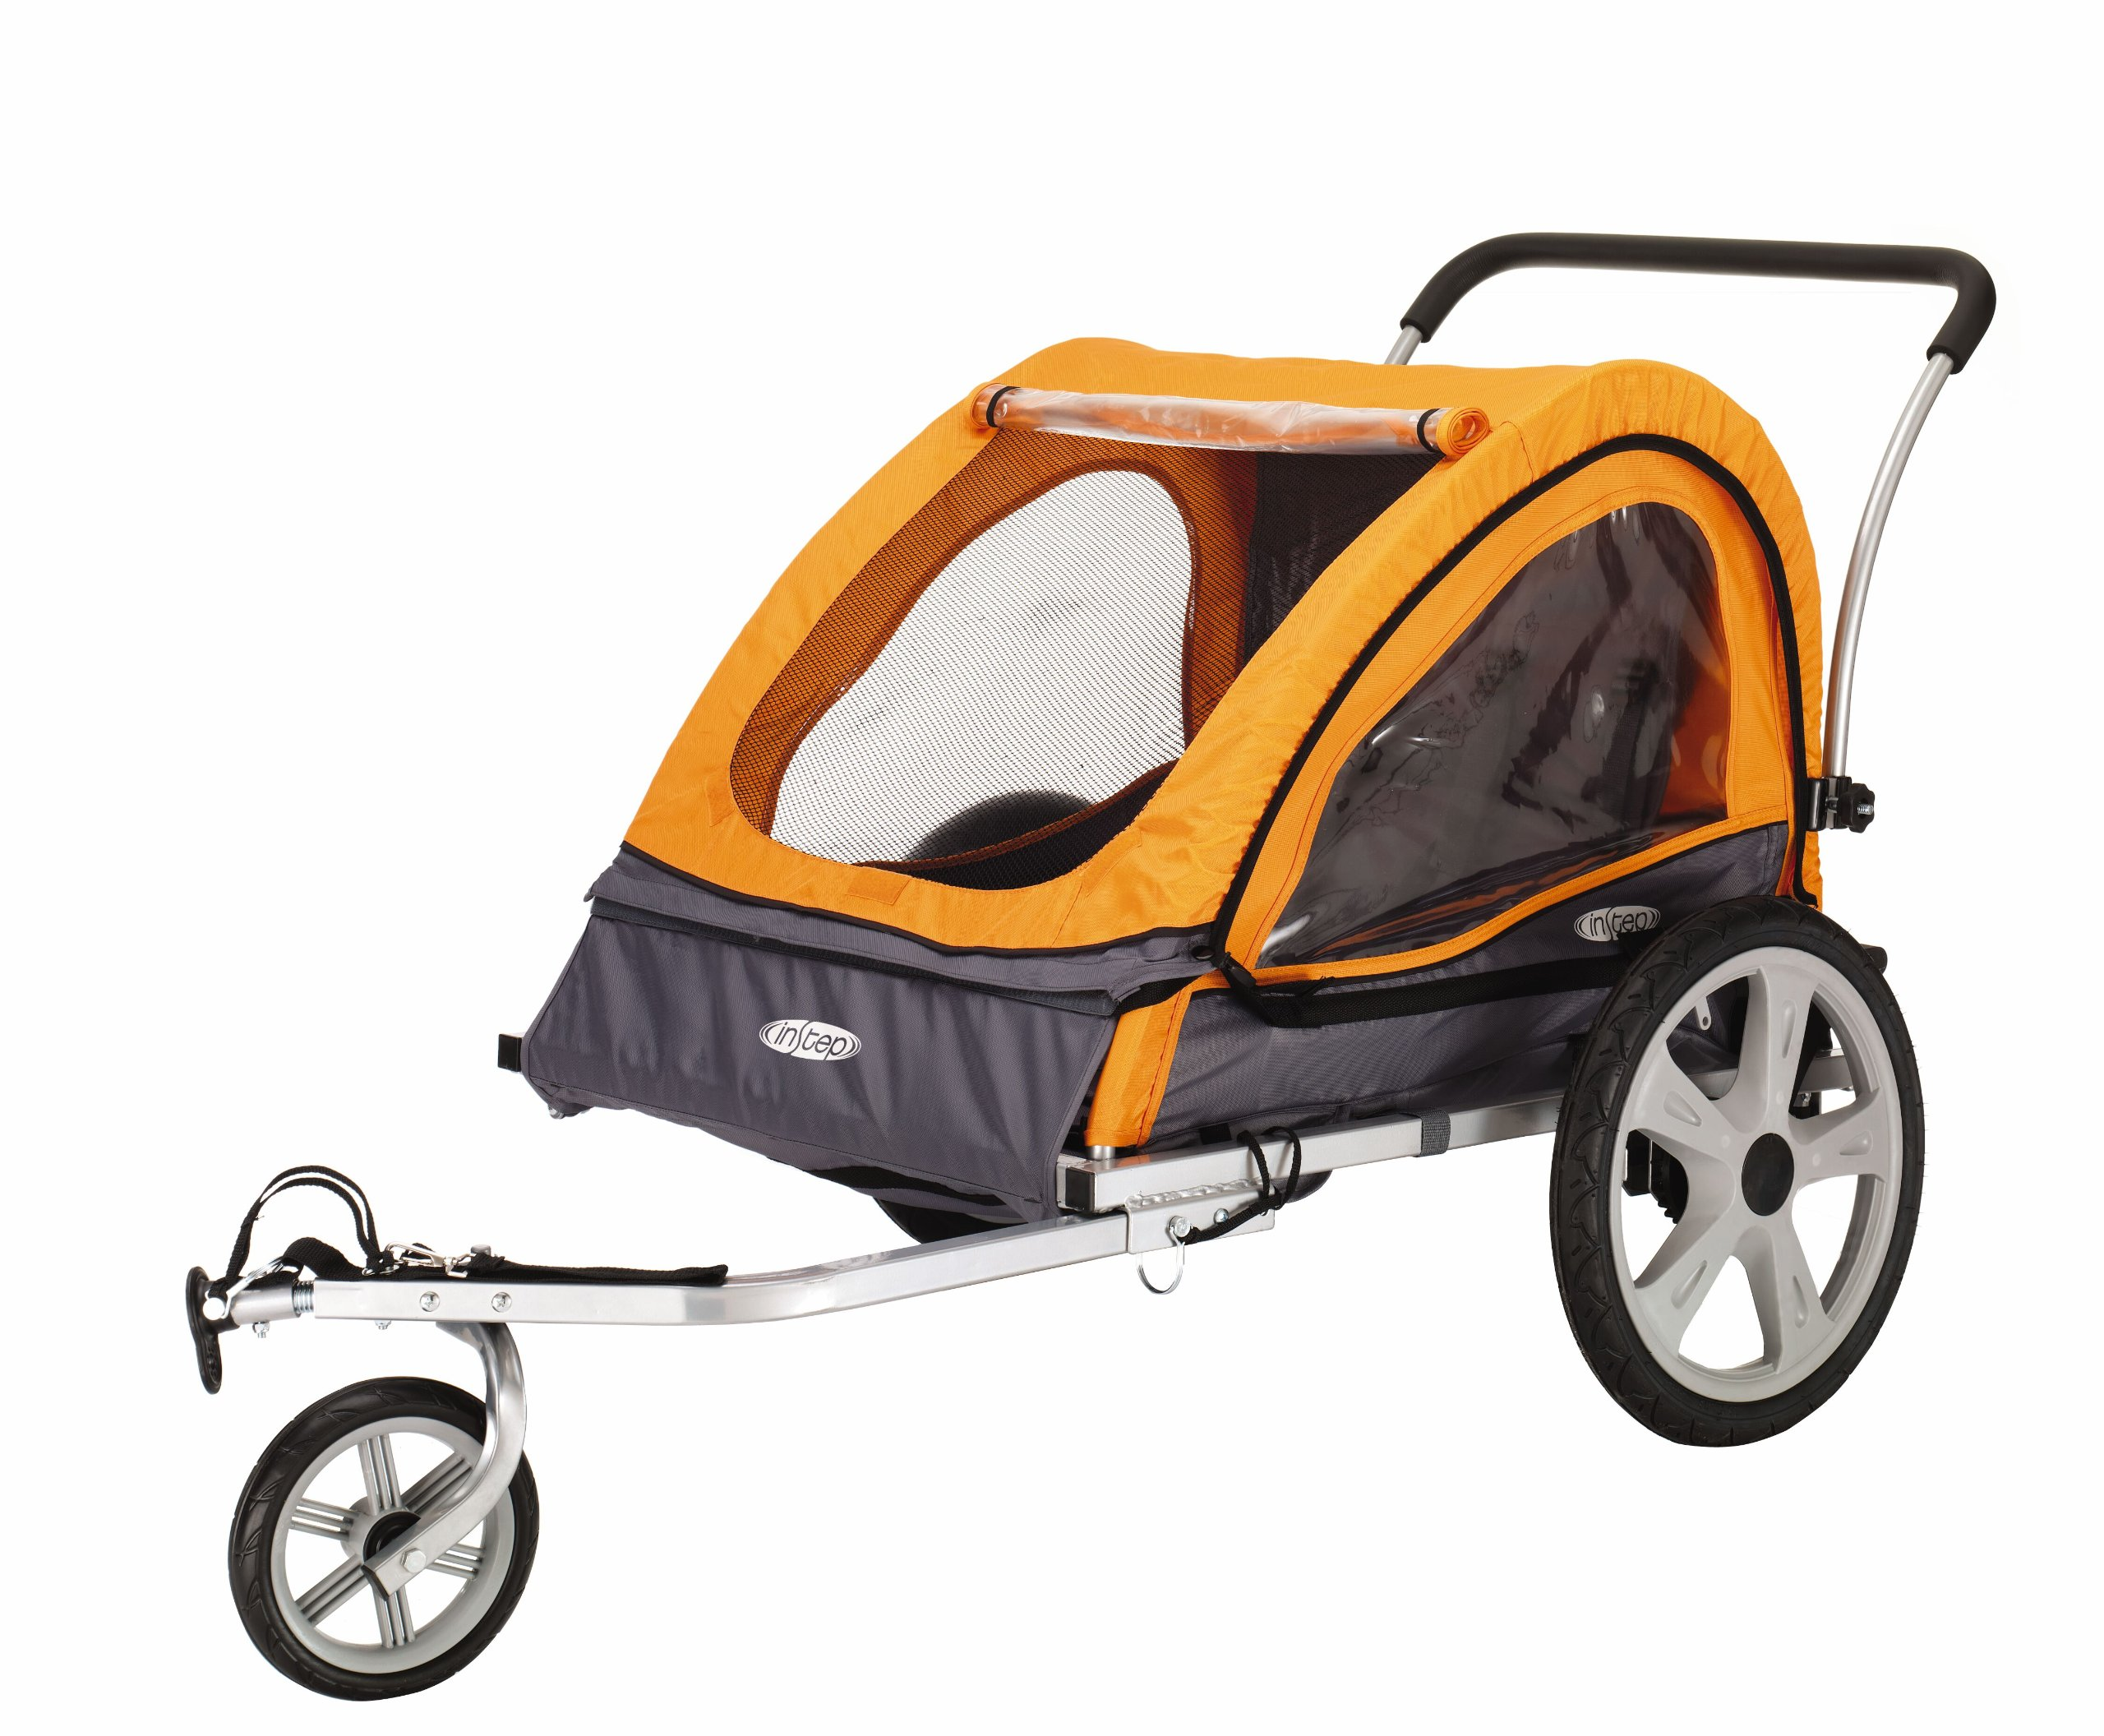 InStep Quick-N-EZ Double Seat Foldable Tow Behind Bike Trailers, Converts to Stroller/Jogger, Featuring 2-in-1 Canopy and 16-Inch Wheels, for Kids and Children, Orange by Instep